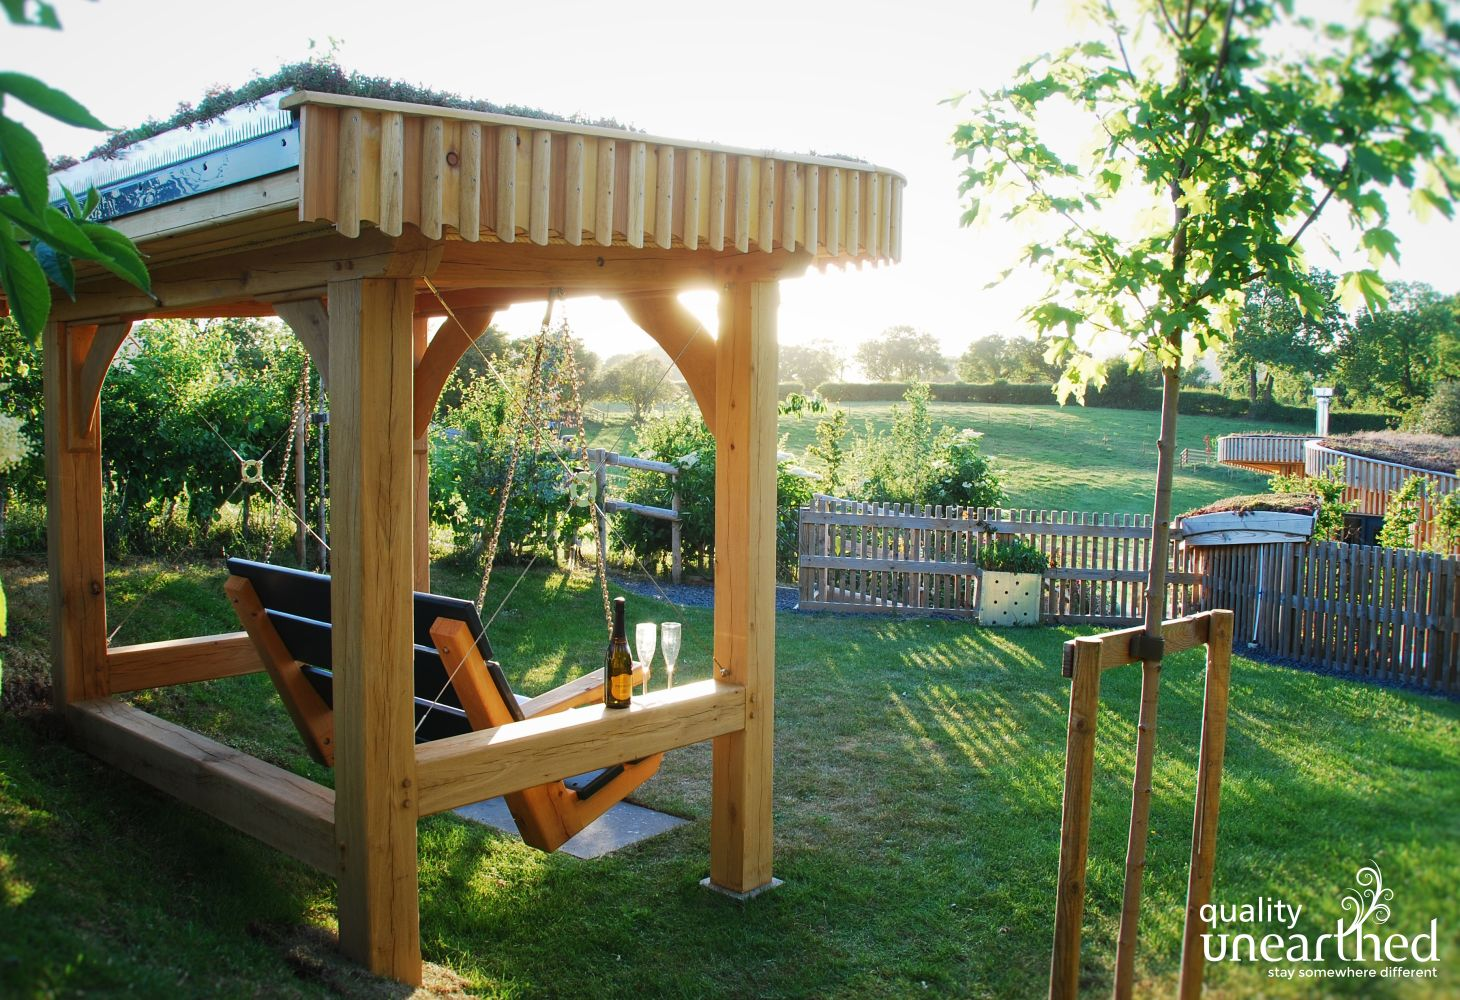 Hand crafted Solid Wood Swing bench with canopy at Malvern Hills Lodge